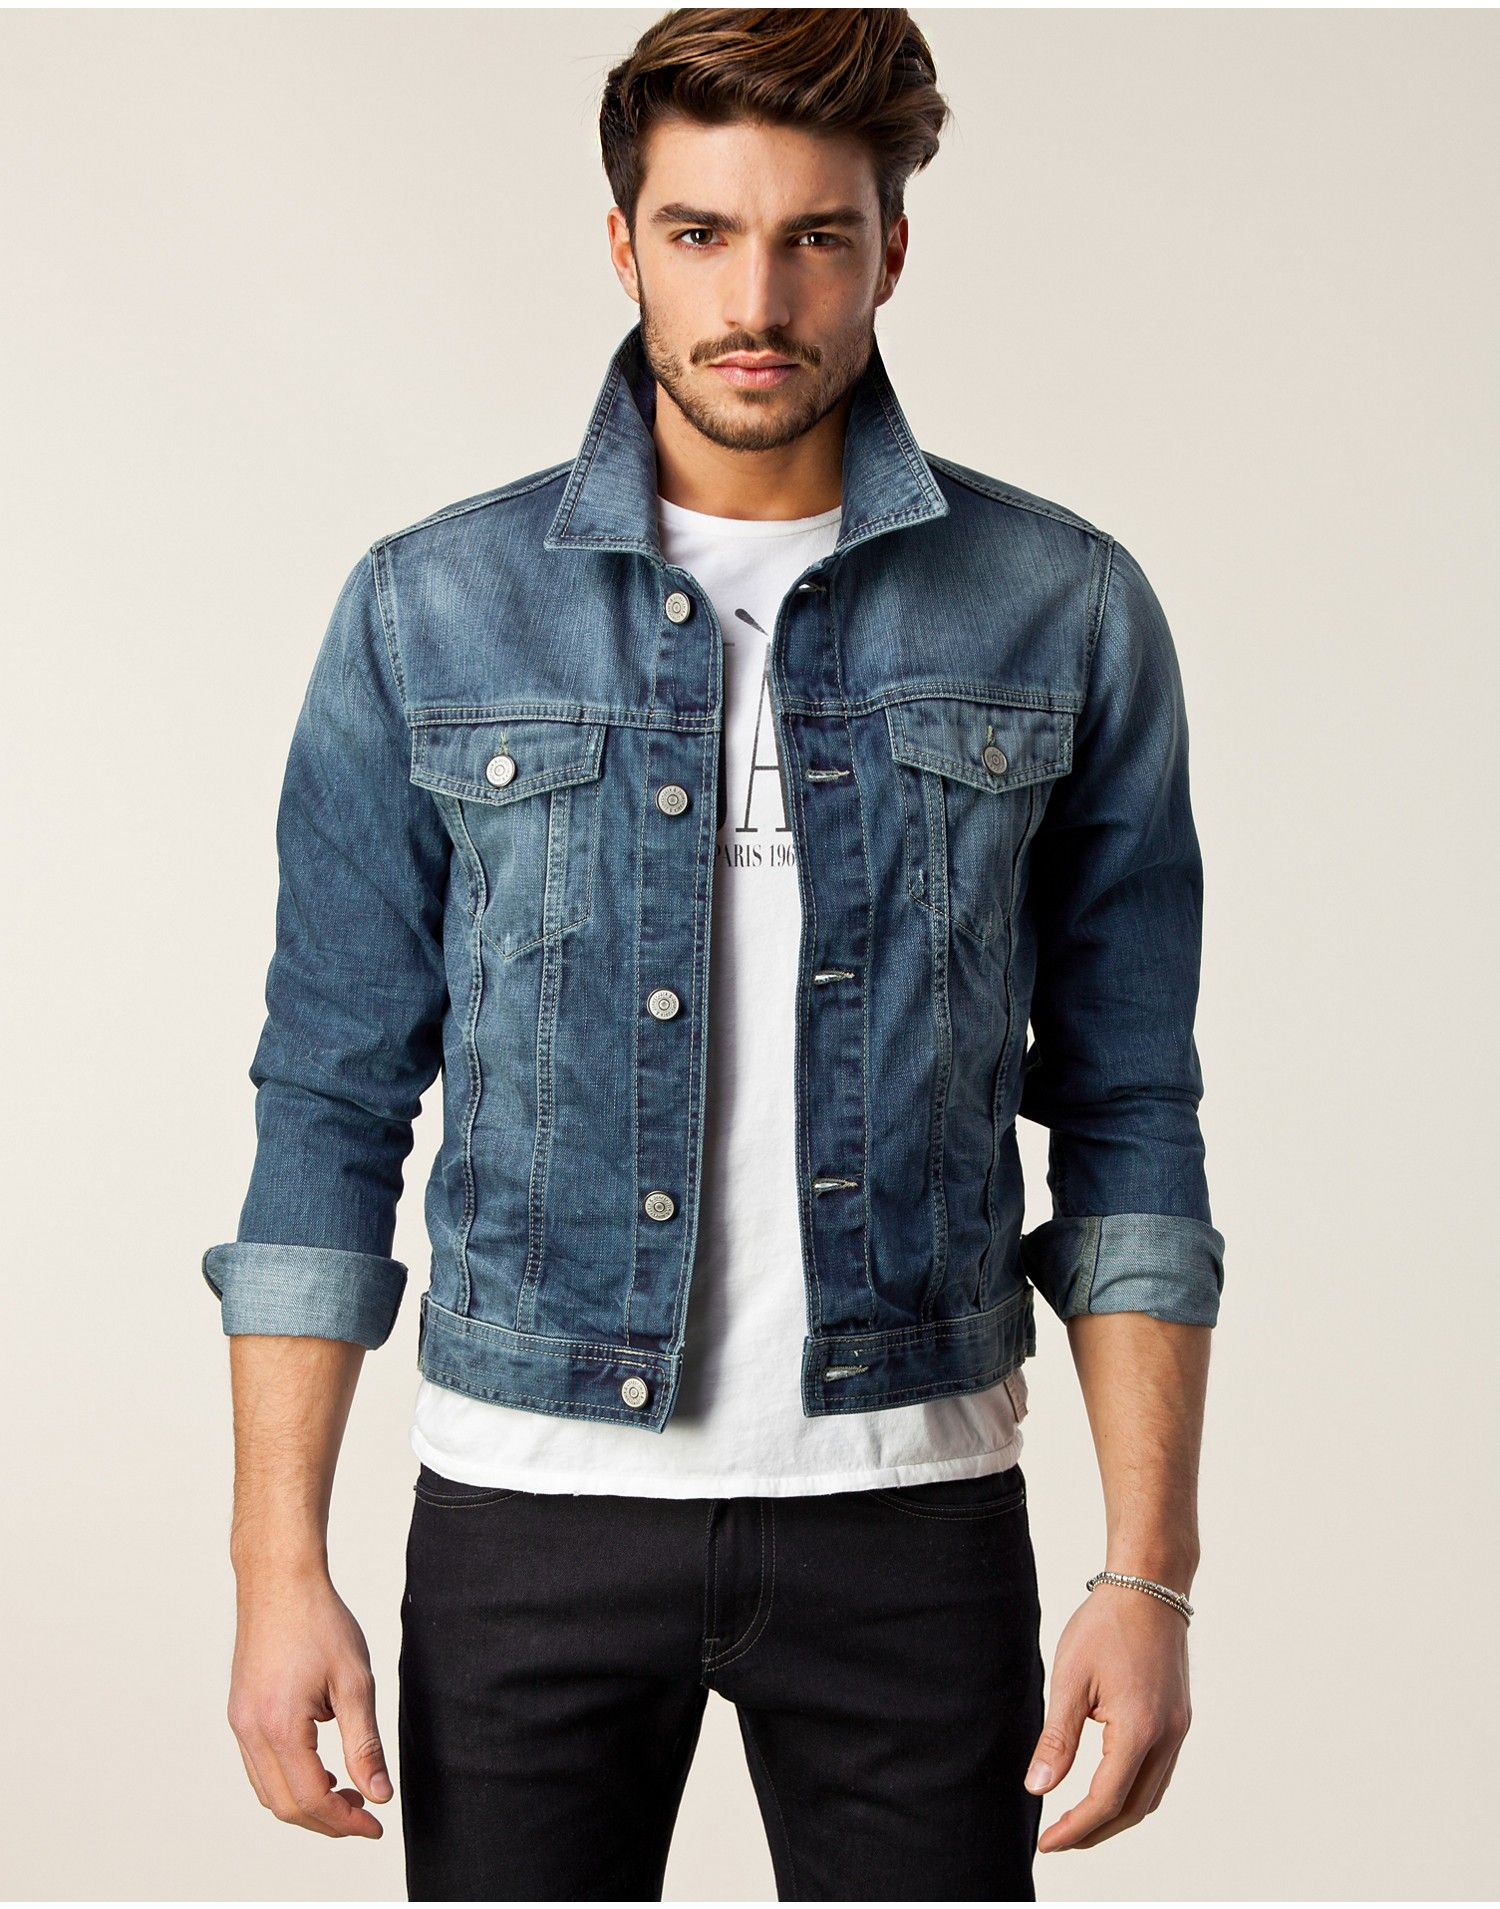 Denim Jacket | amodernirishman | Denim for Men | Pinterest | Men's ...